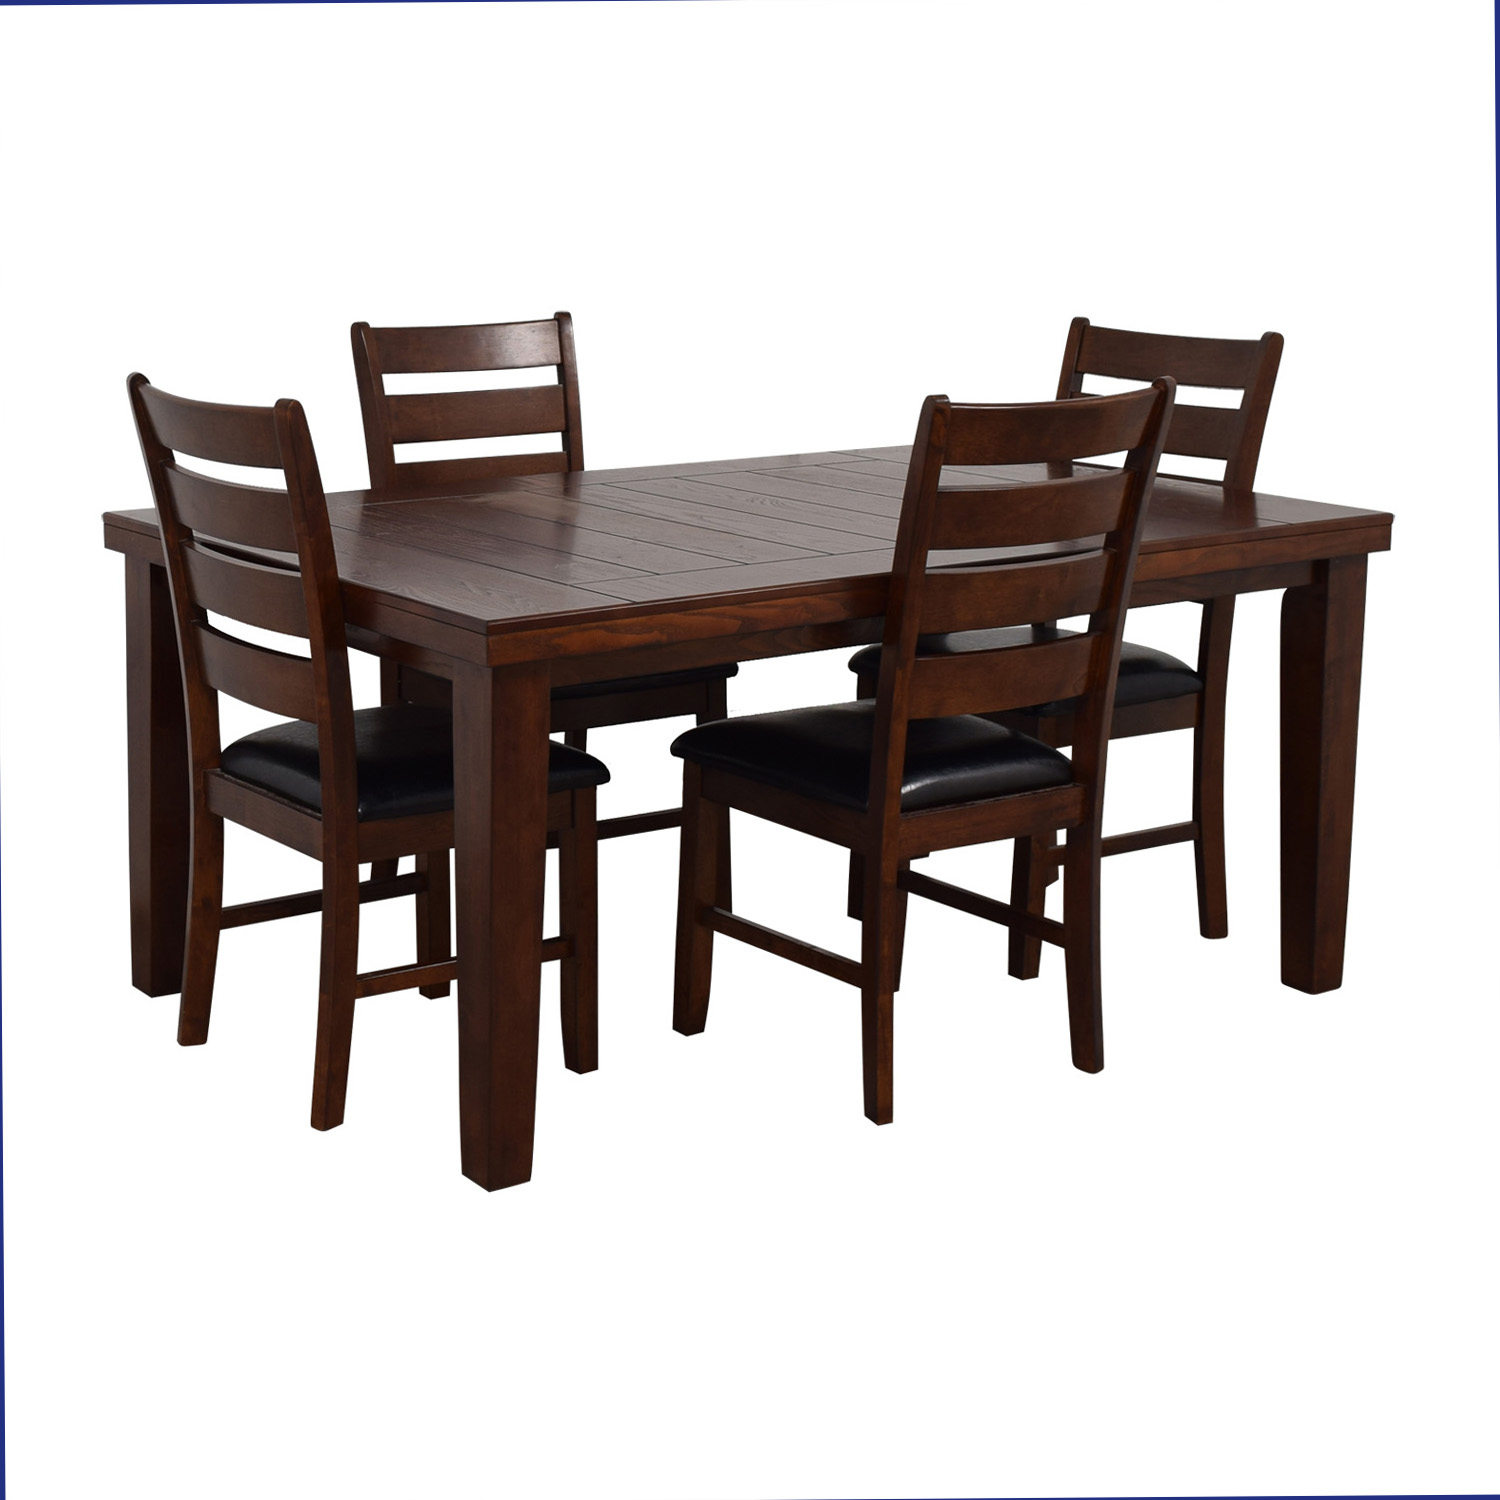 Wood Dining Set dimensions